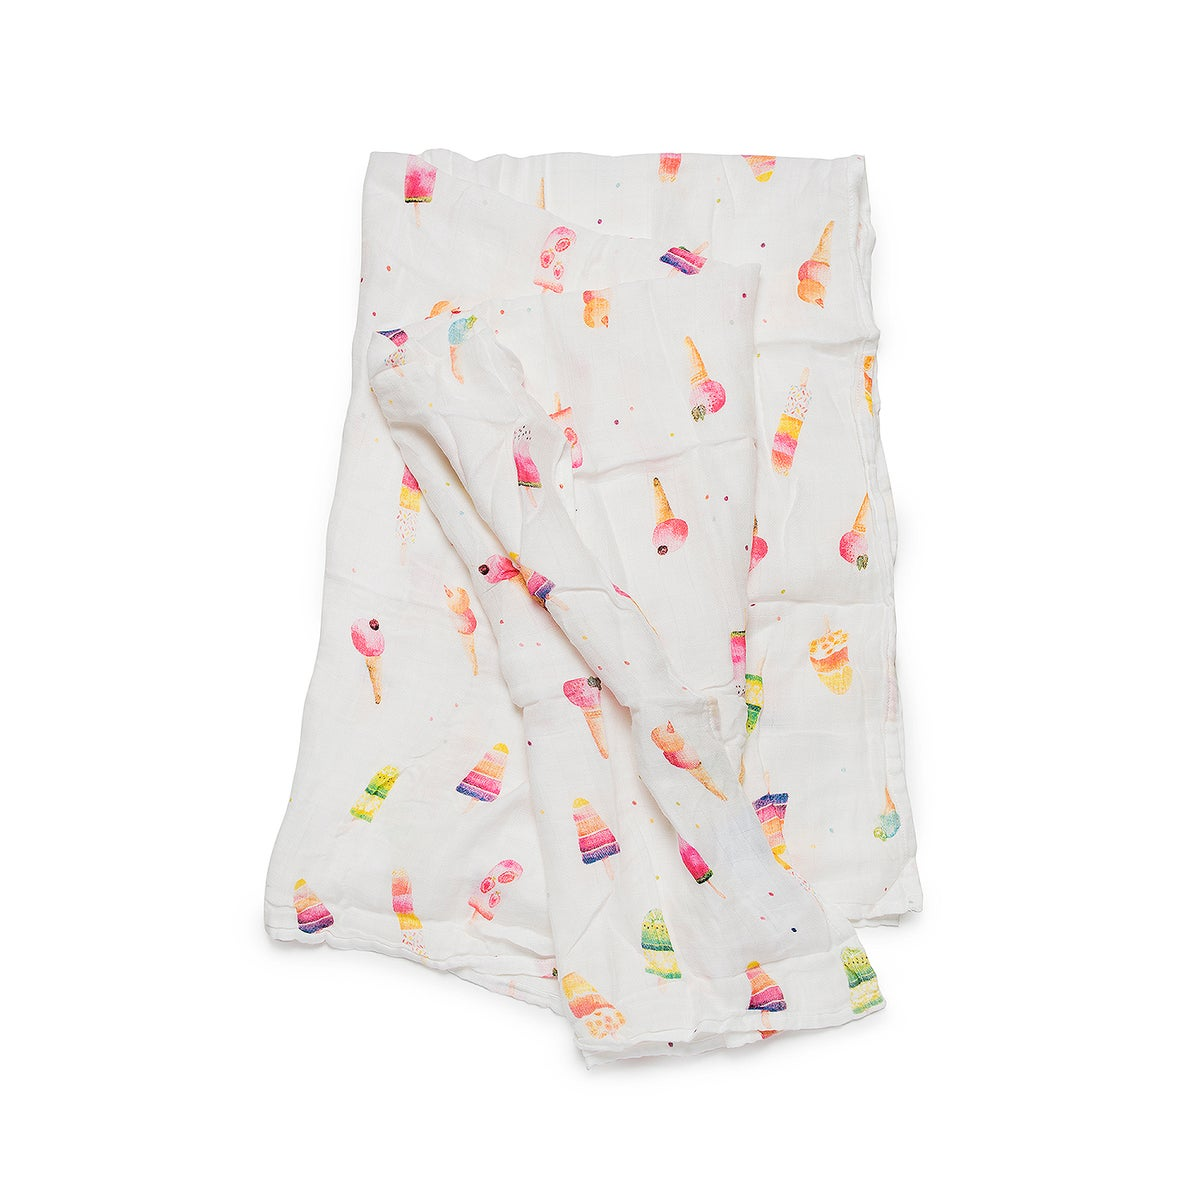 Image of LOU LOU LOLLIPOP ICE CREAM SWADDLE